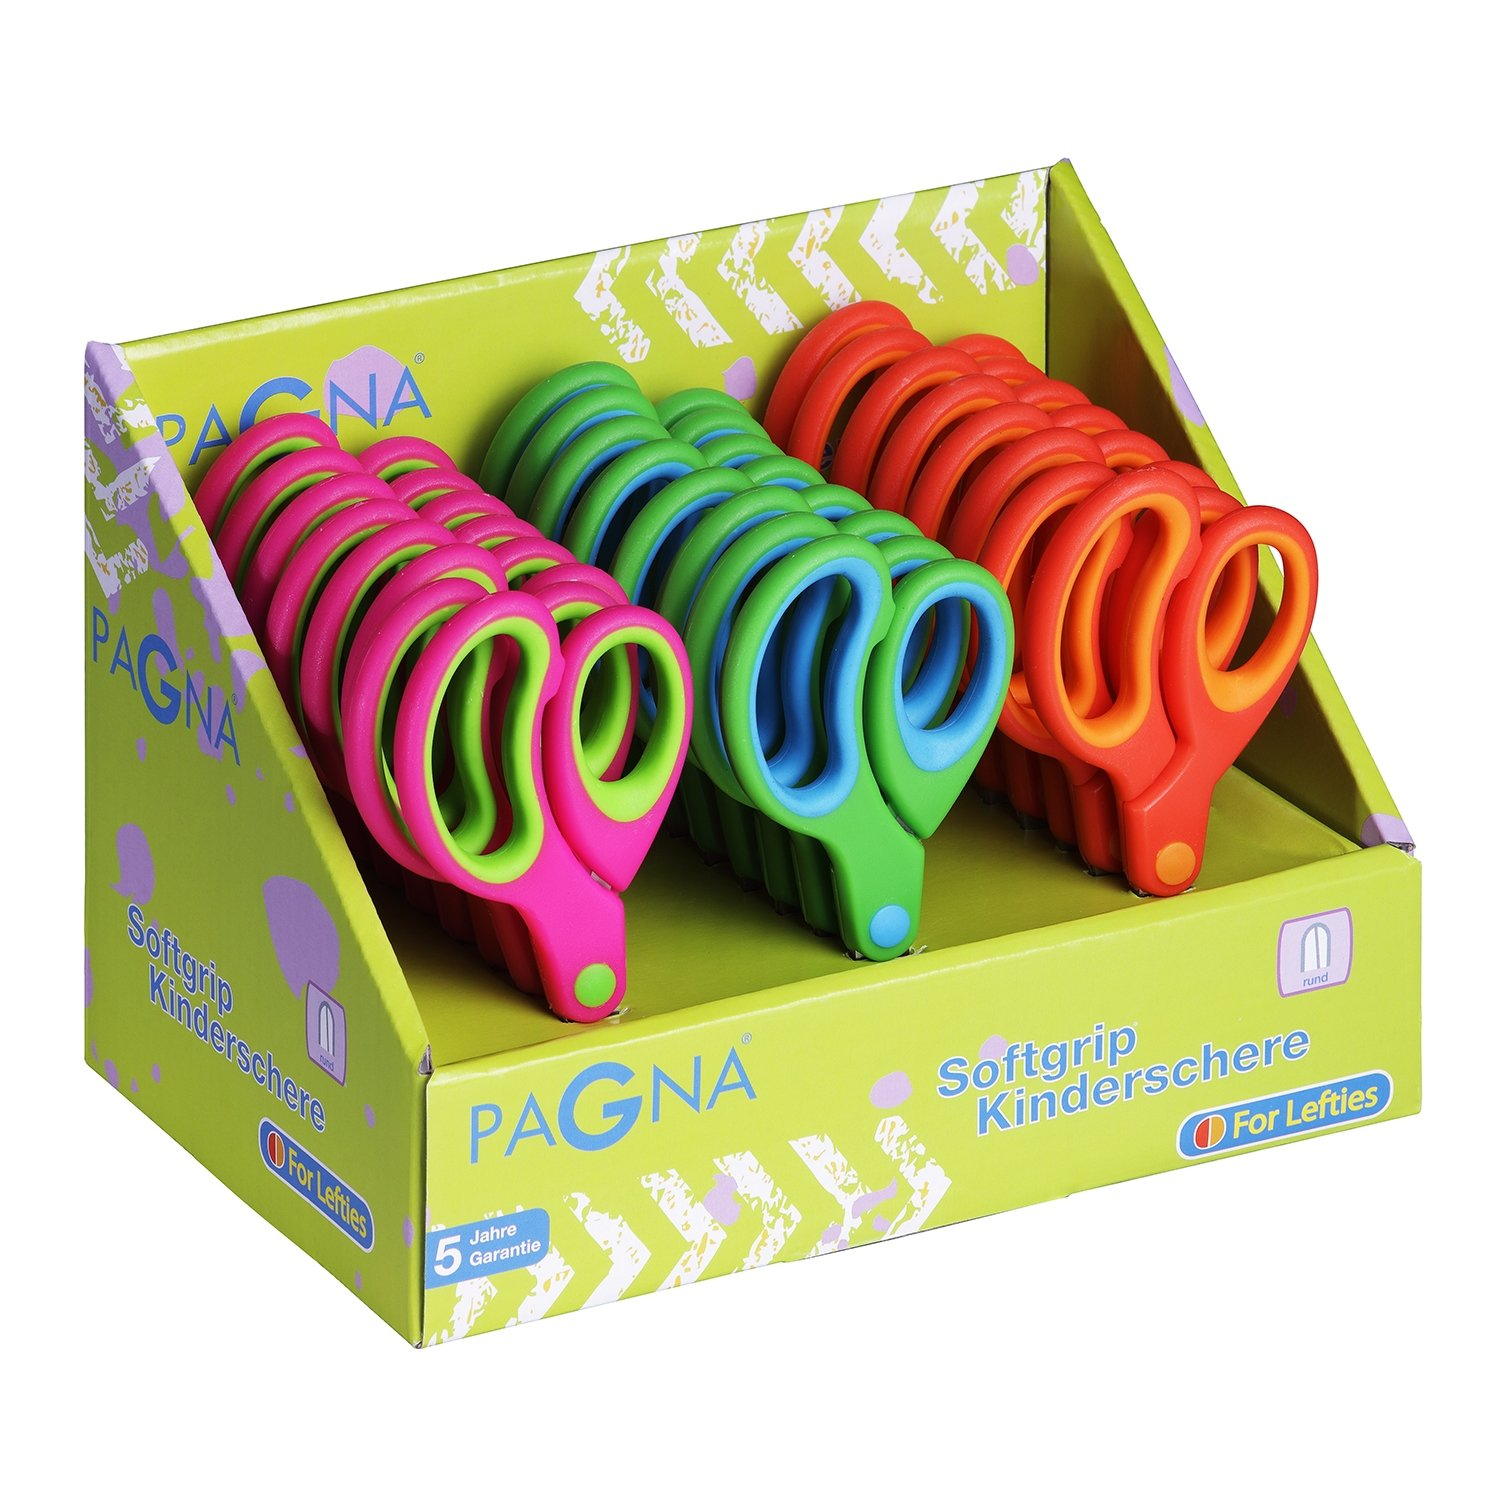 Pagna 99215Set 00Children's Scissors Soft Grip Round Assorted Set of 24(Craft Scissors for Right or Left Handed)